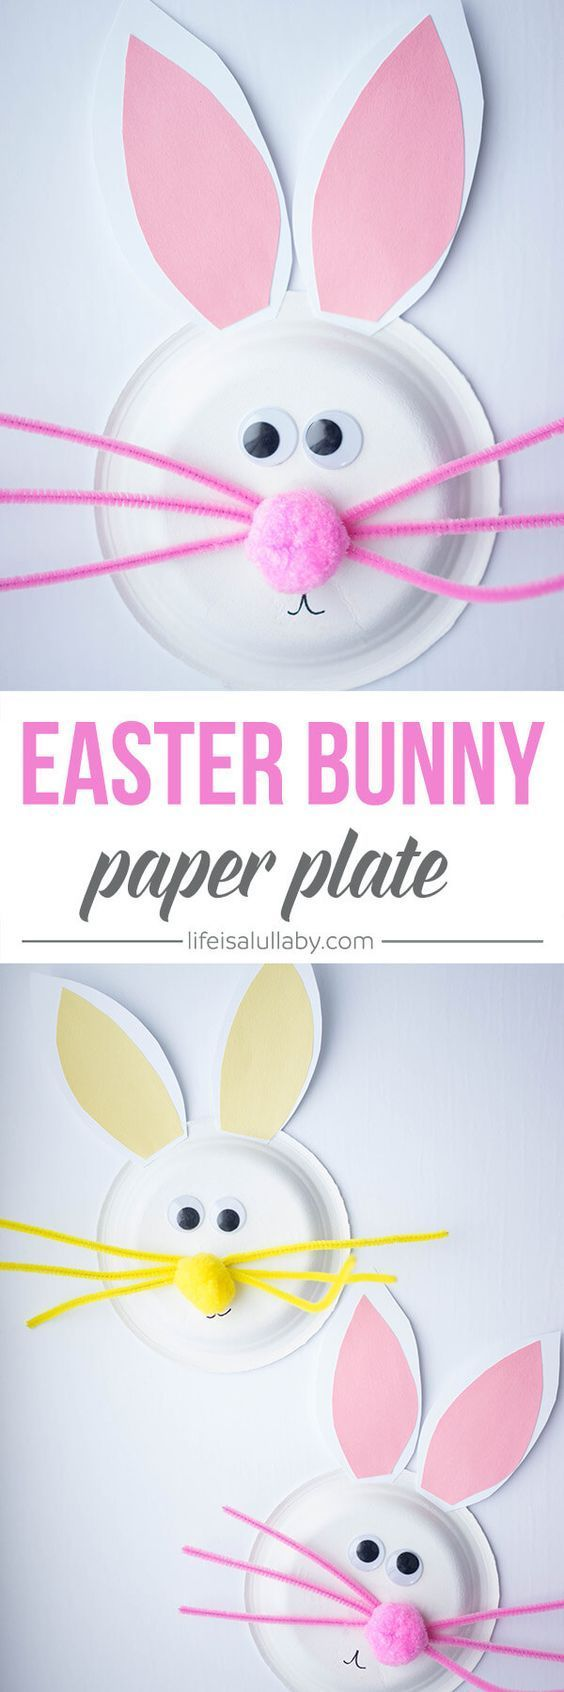 This paper plate Easter Bunny is so cute! I love how easy this is to make and a really fun kids craft to do with the kids!  sc 1 st  Pinterest : paper plate easter bunny - Pezcame.Com